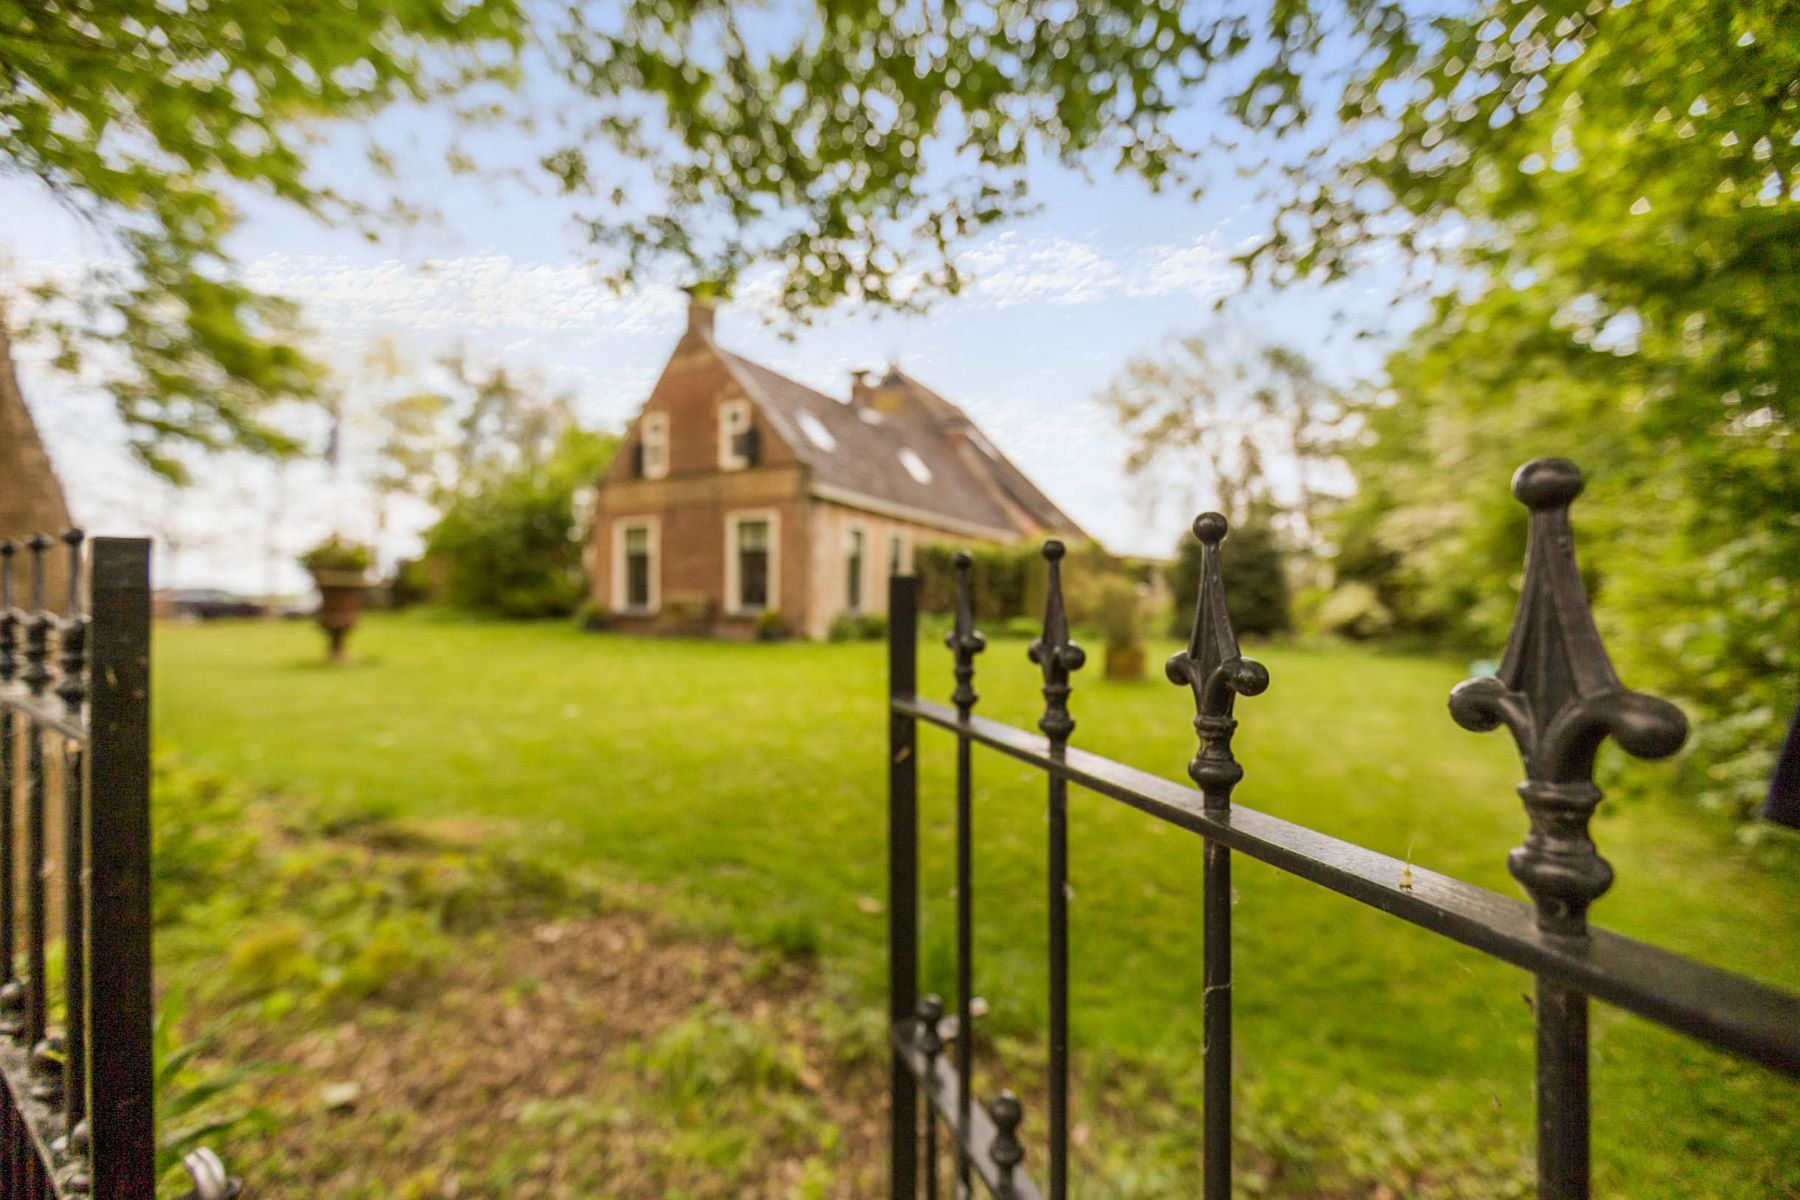 Single Family Homes for Sale at Beautifully Restored Farmhouse Other Friesland, Friesland Netherlands